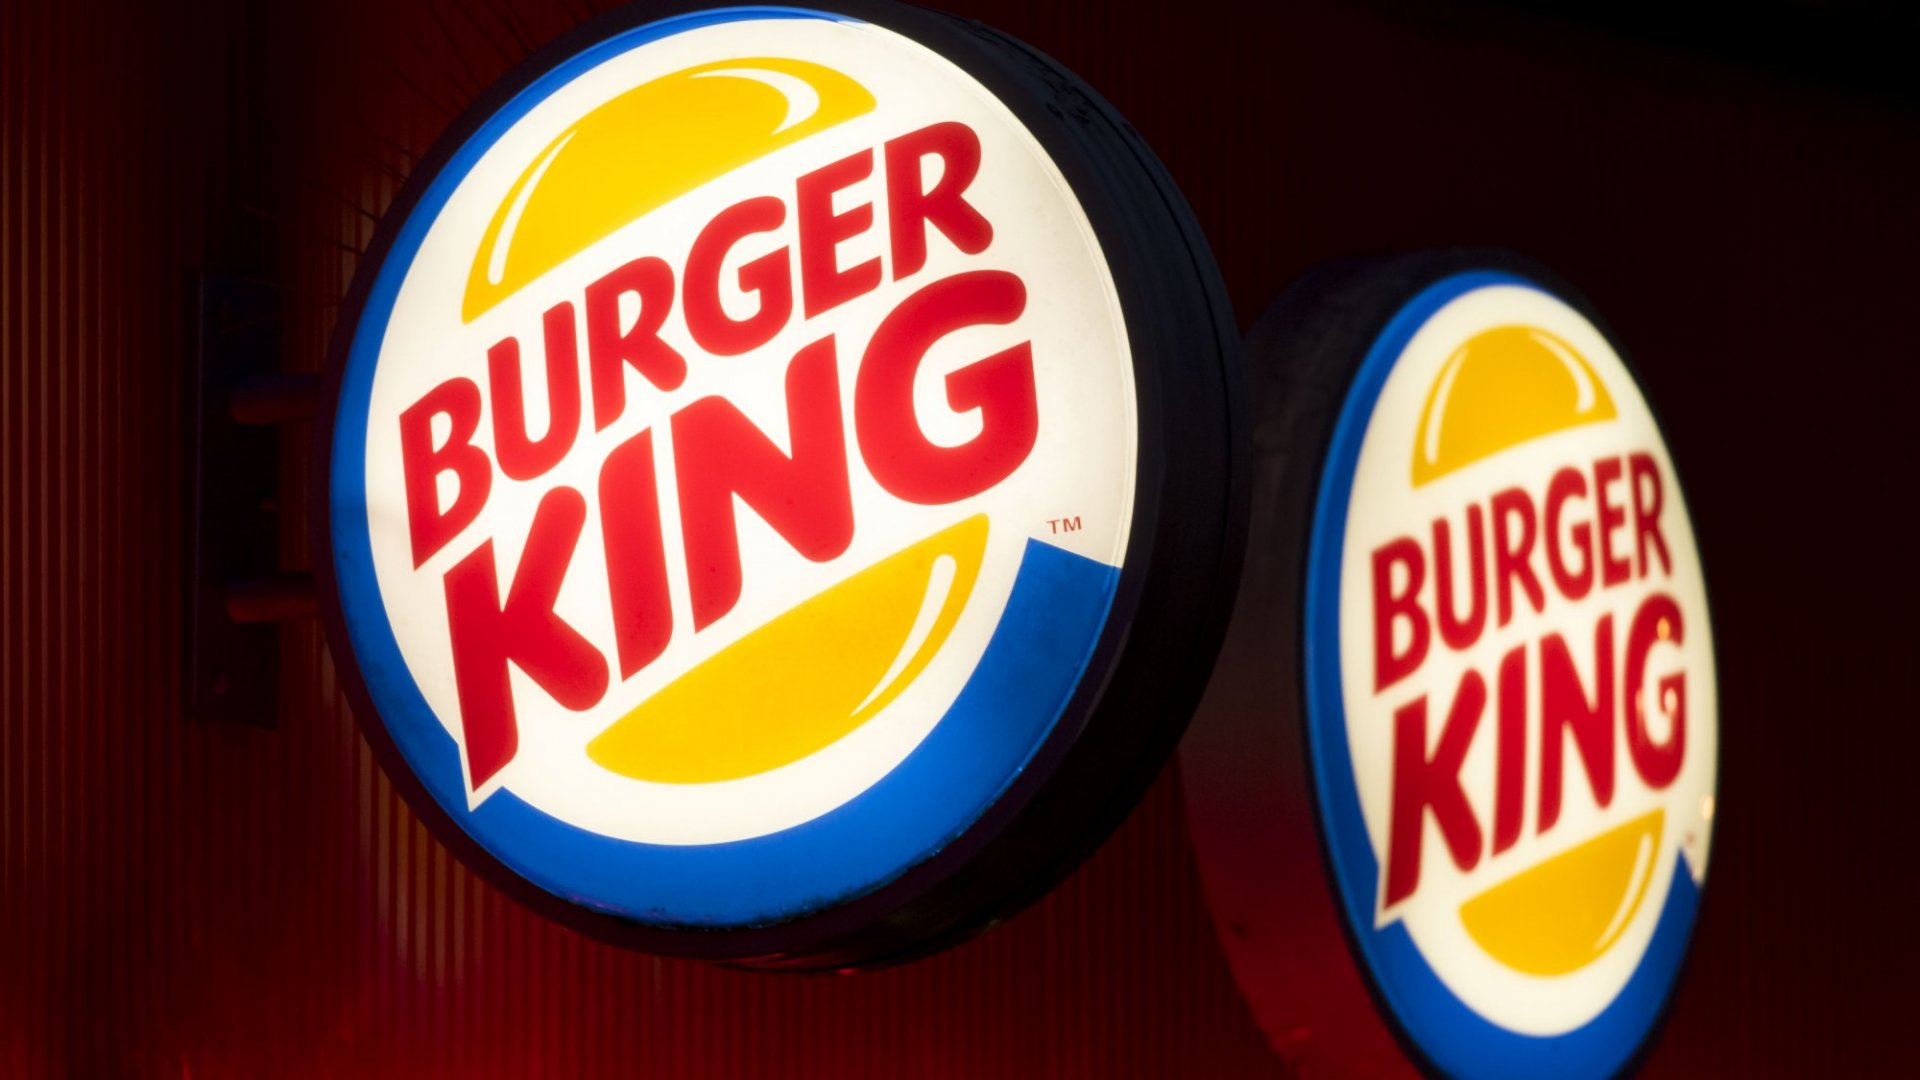 Burger King's New Ad Features a Moldy Whopper. Here's Why That's Actually Genius Marketing